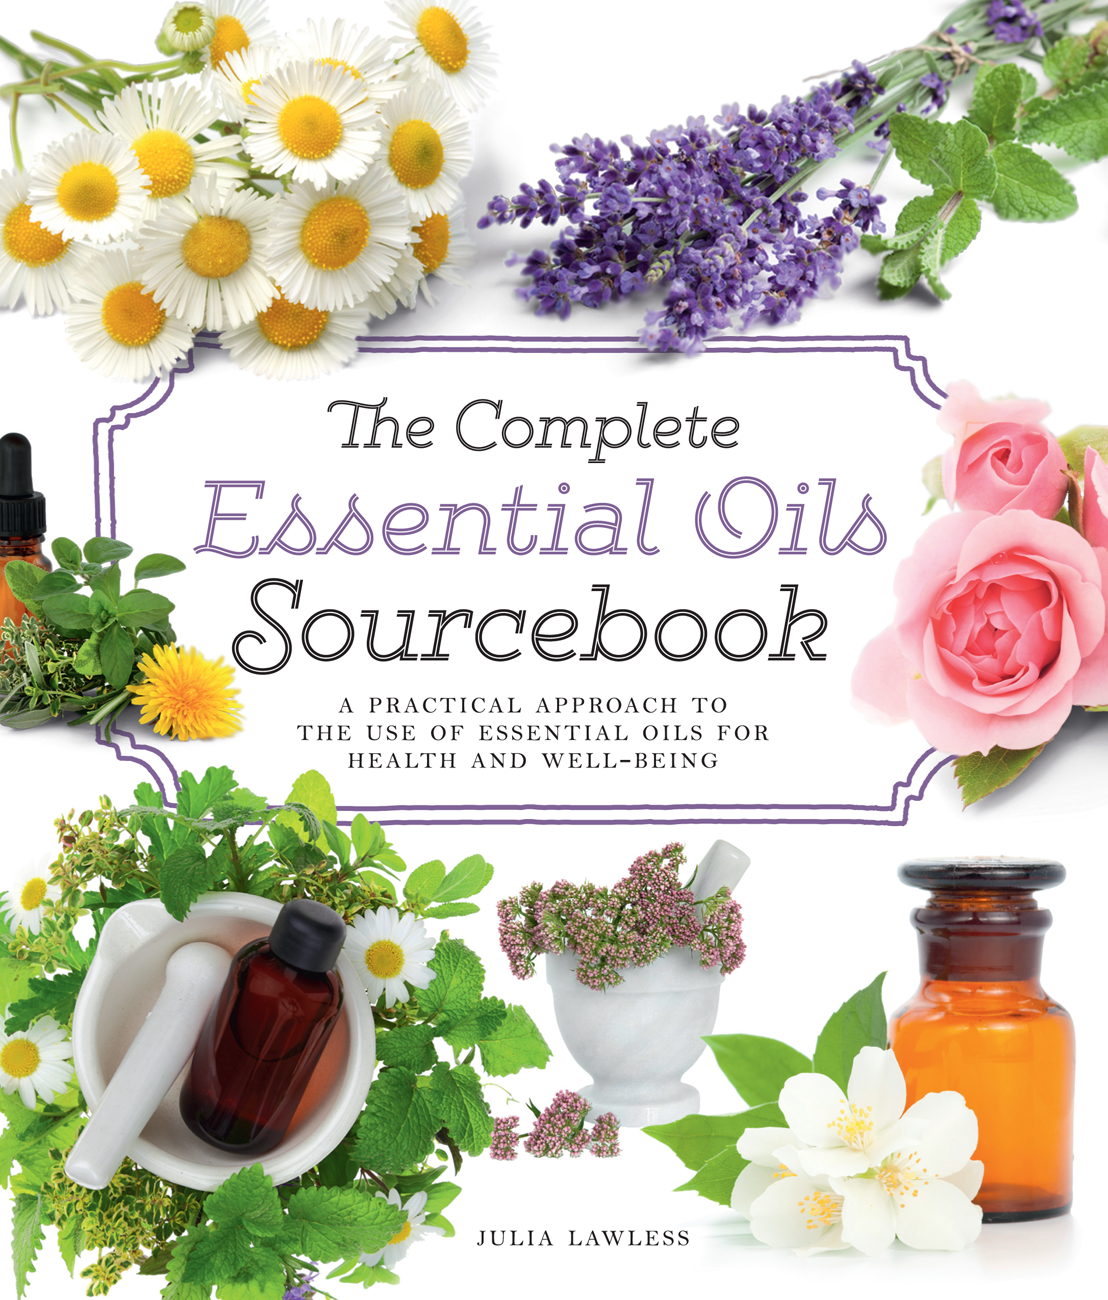 Julia Lawless The Complete Essential Oils Sourcebook: A Practical Approach to the Use of Essential Oils for Health and Well-Being 1920s fashion the definitive sourcebook